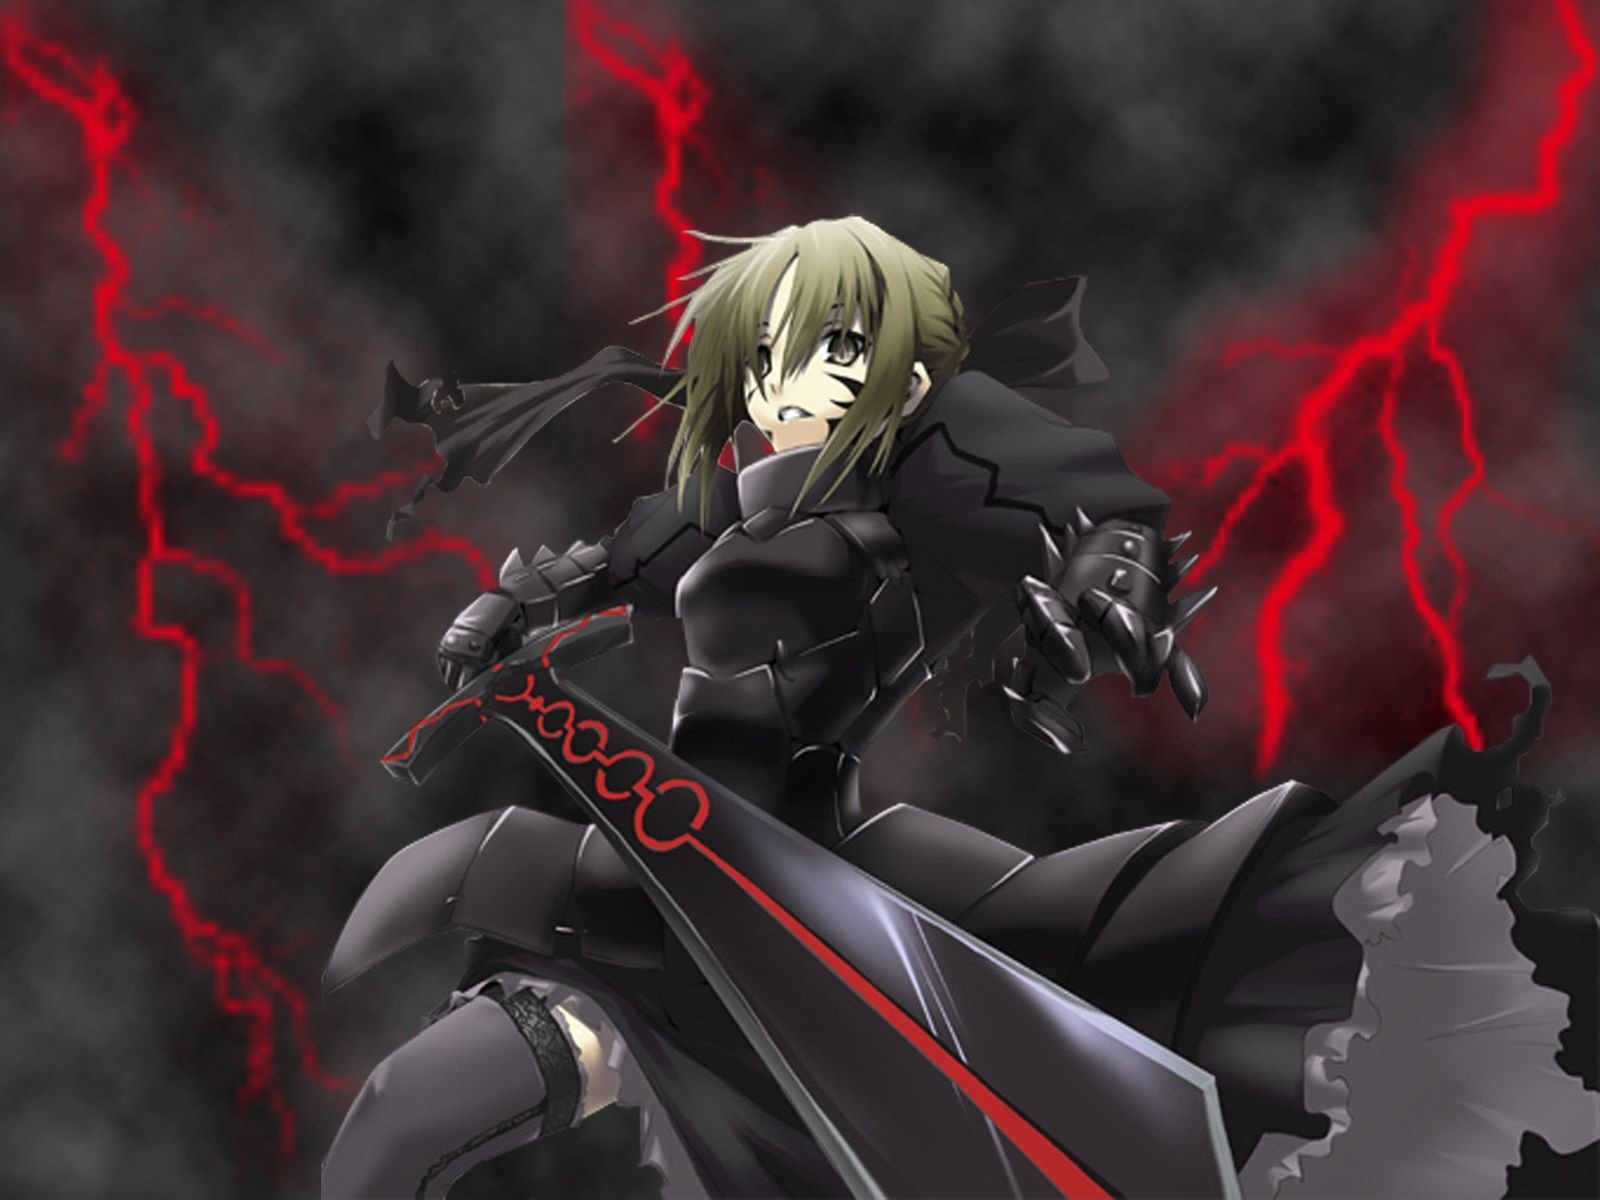 Anime - Fate/Stay Night  Saber Alter Wallpaper